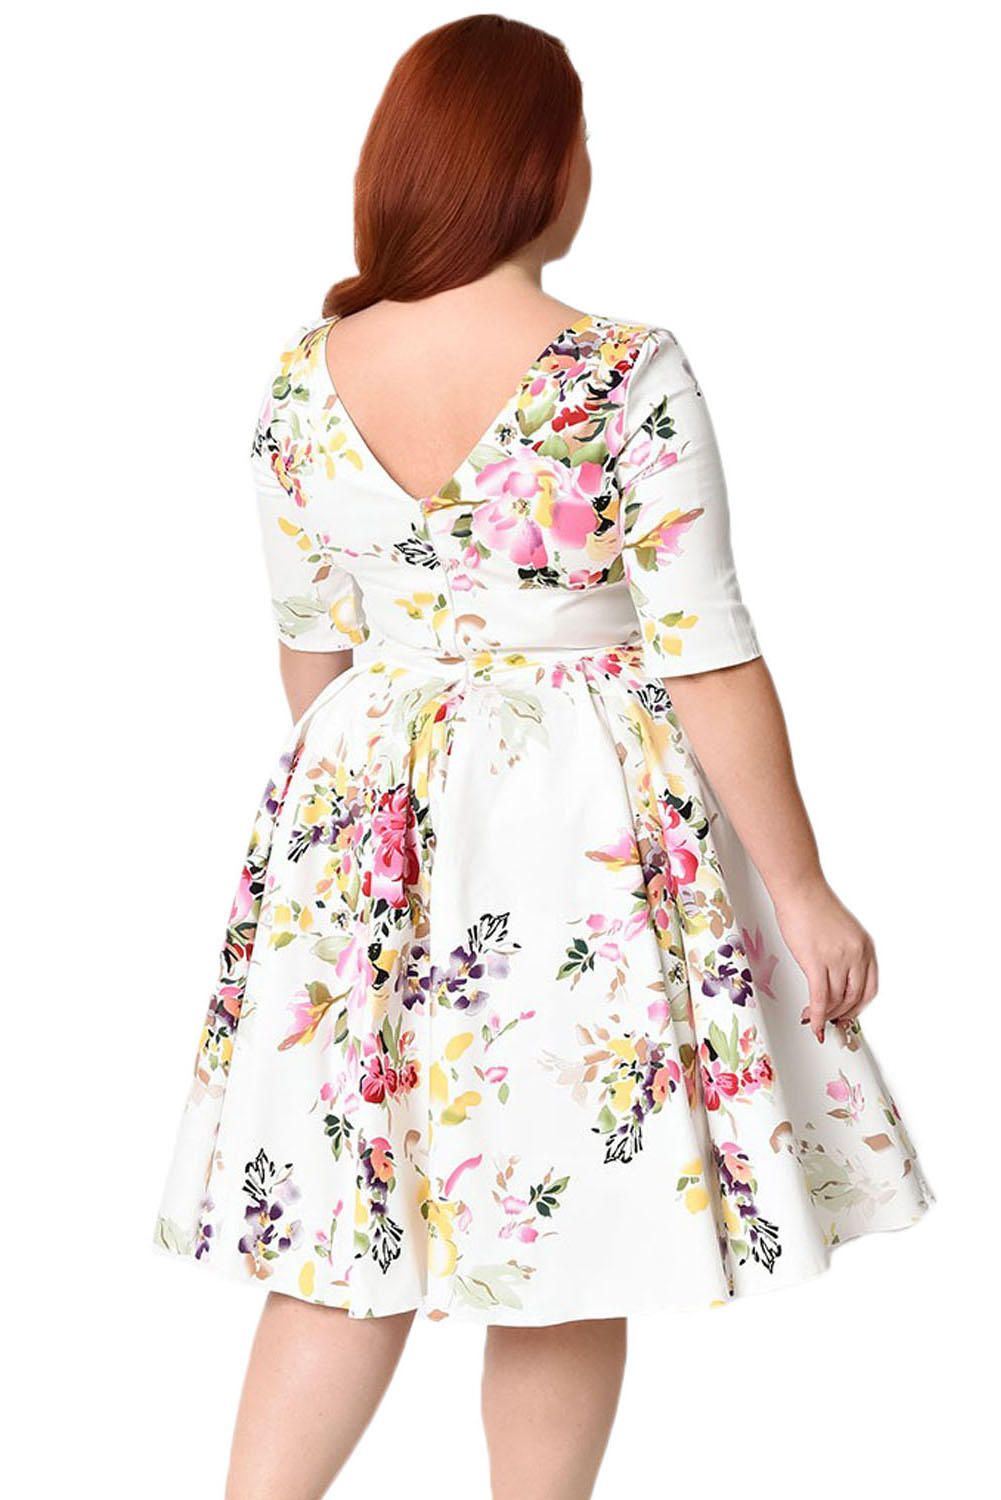 BY61702-1 Vintage Style Floral Half Sleeve Swing Dress